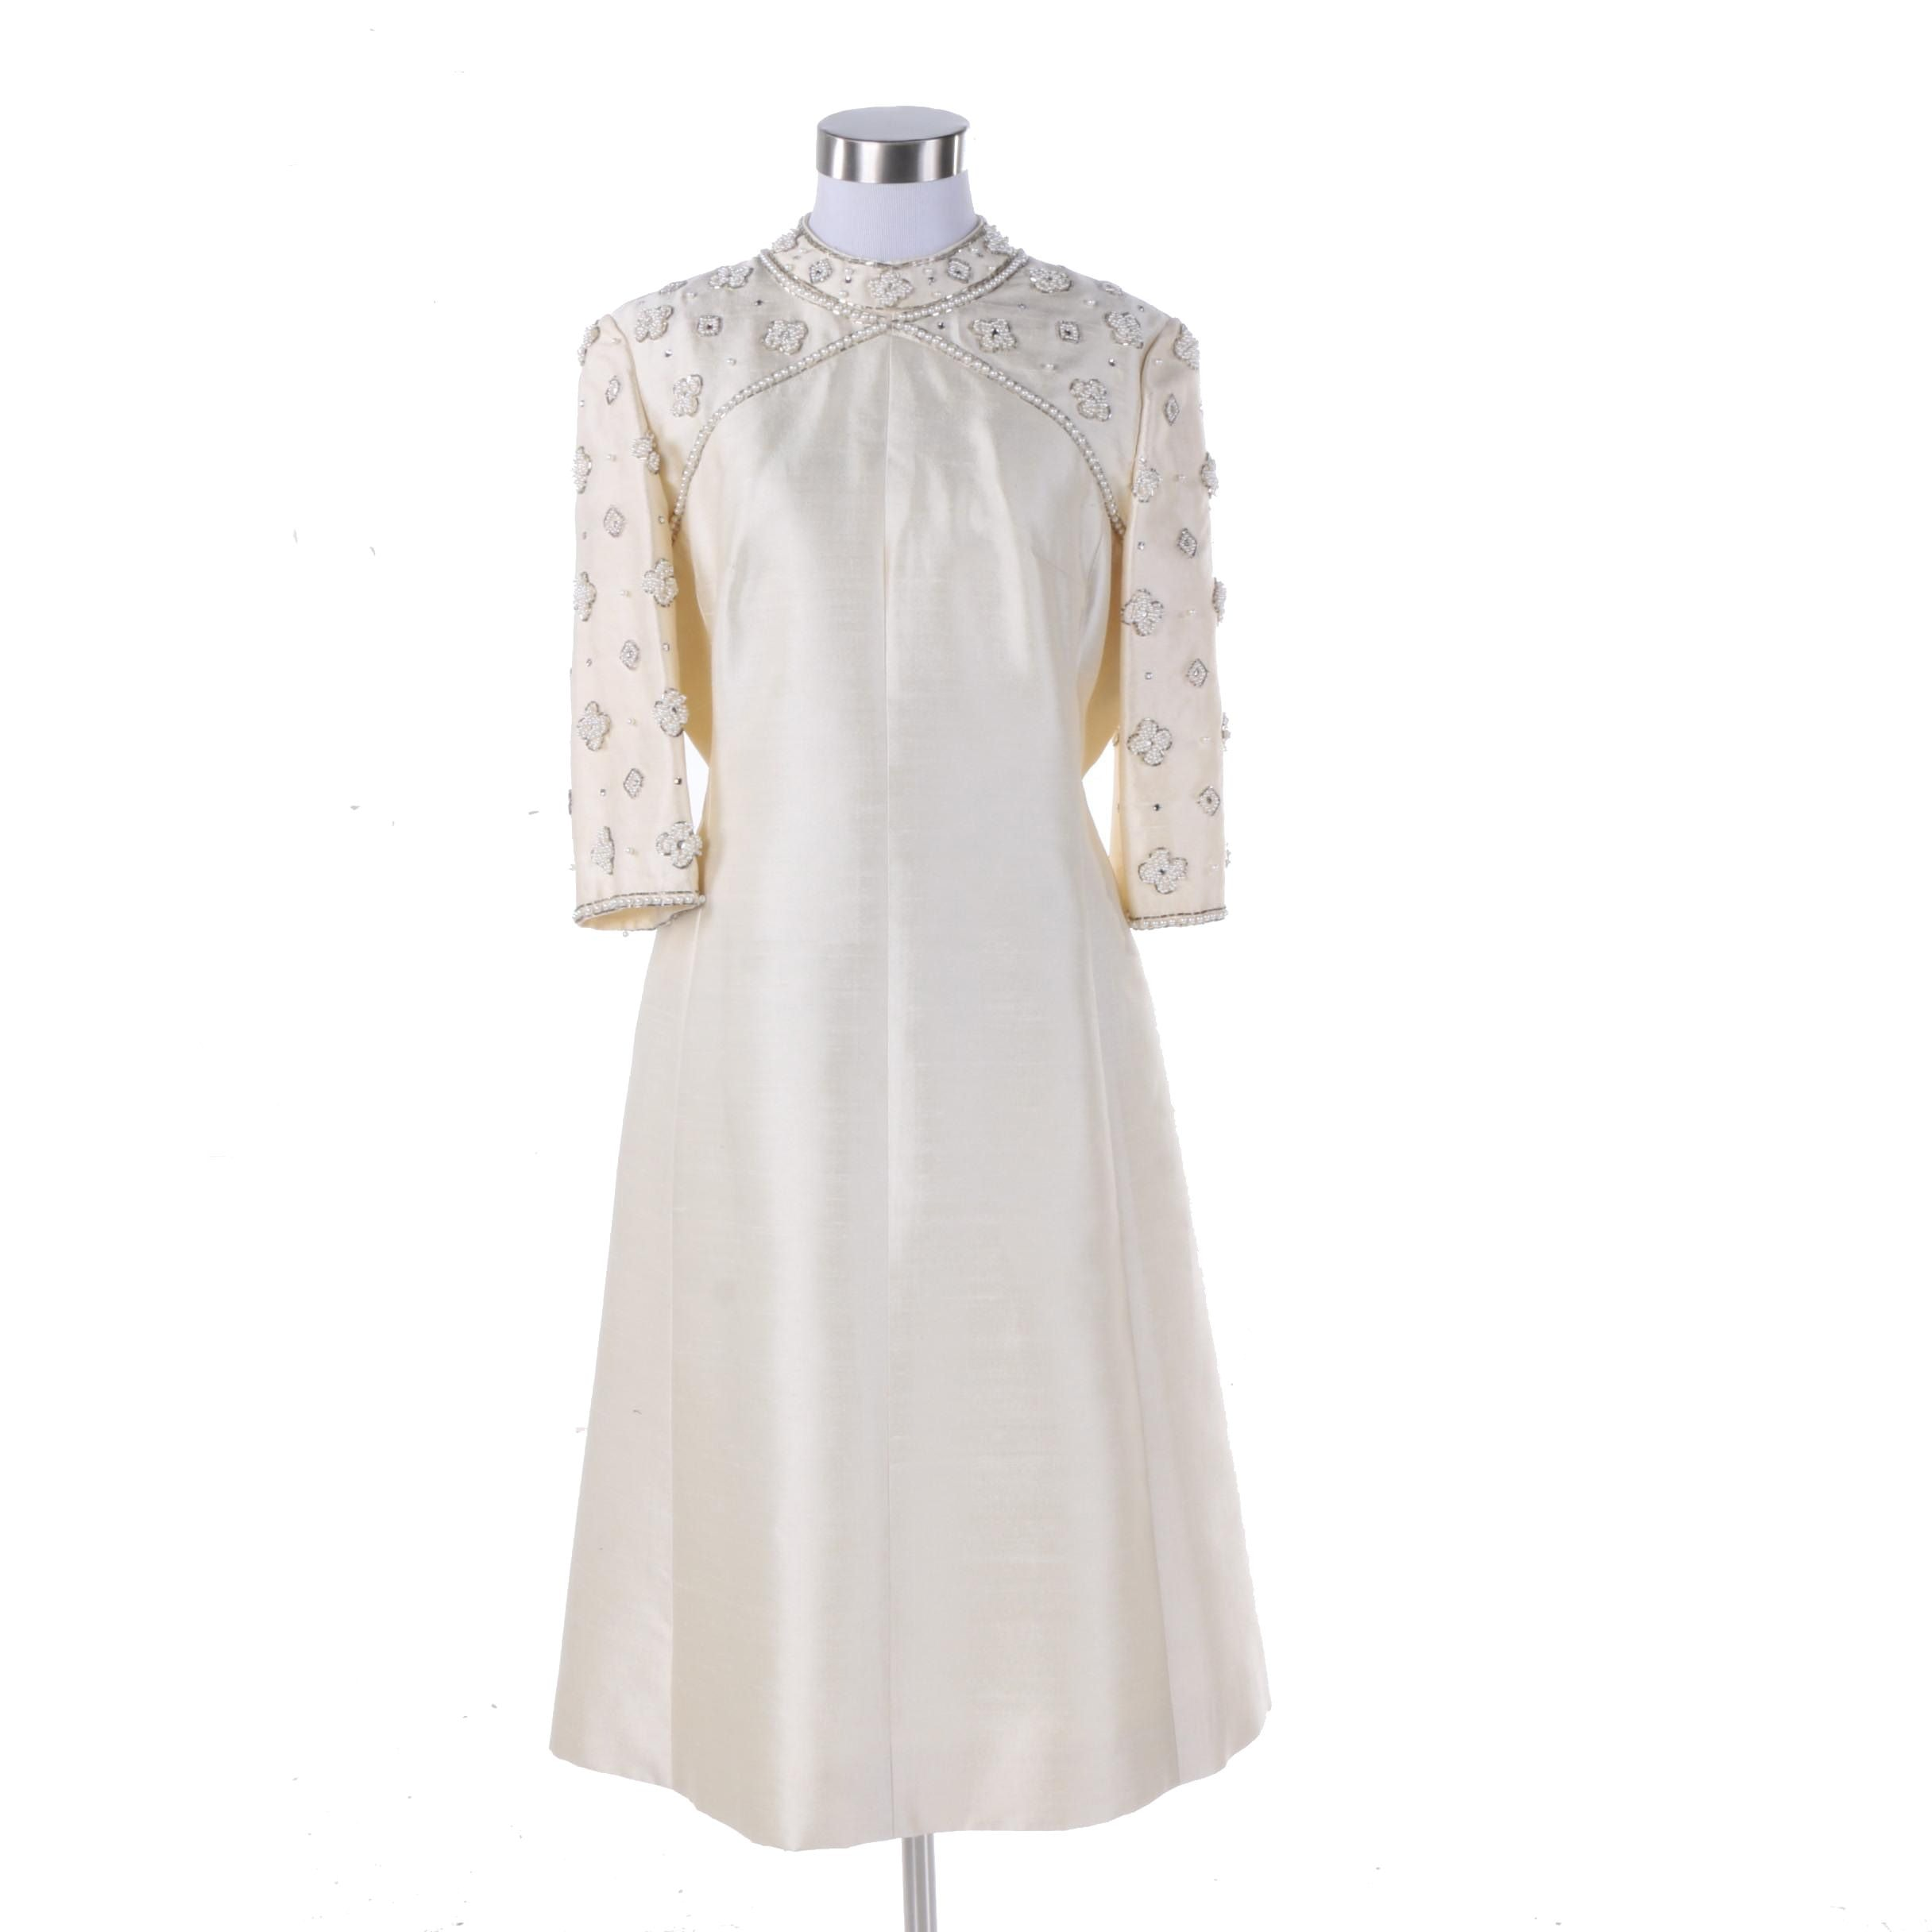 1960s Cream Dupioni Silk Cocktail Dress with Faux Pearl Beading